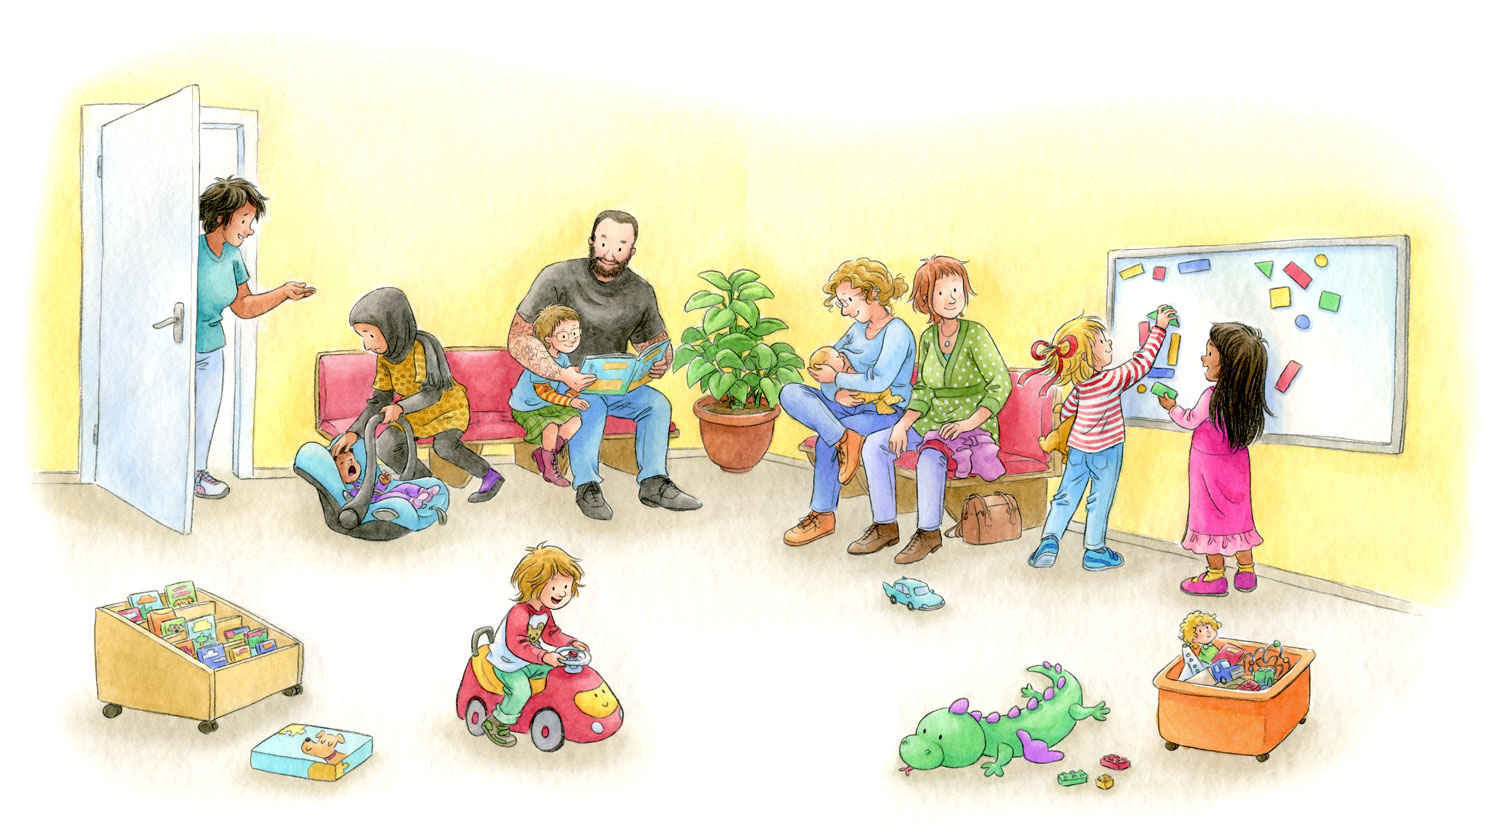 Sample page from 'Conni goes to the pediatrician'